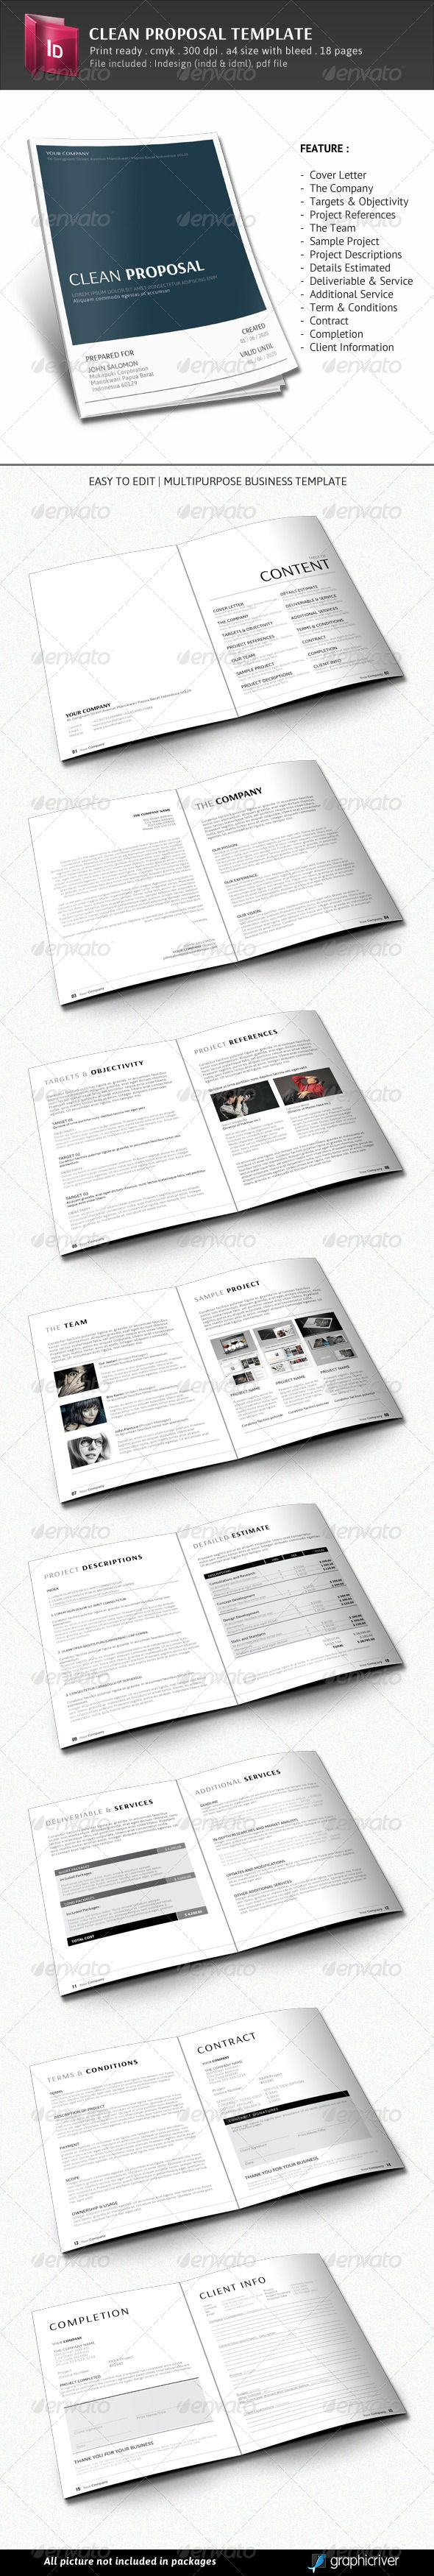 Commercial Proposal Format Alluring 226 Best Proposal & Invoice Templates Images On Pinterest